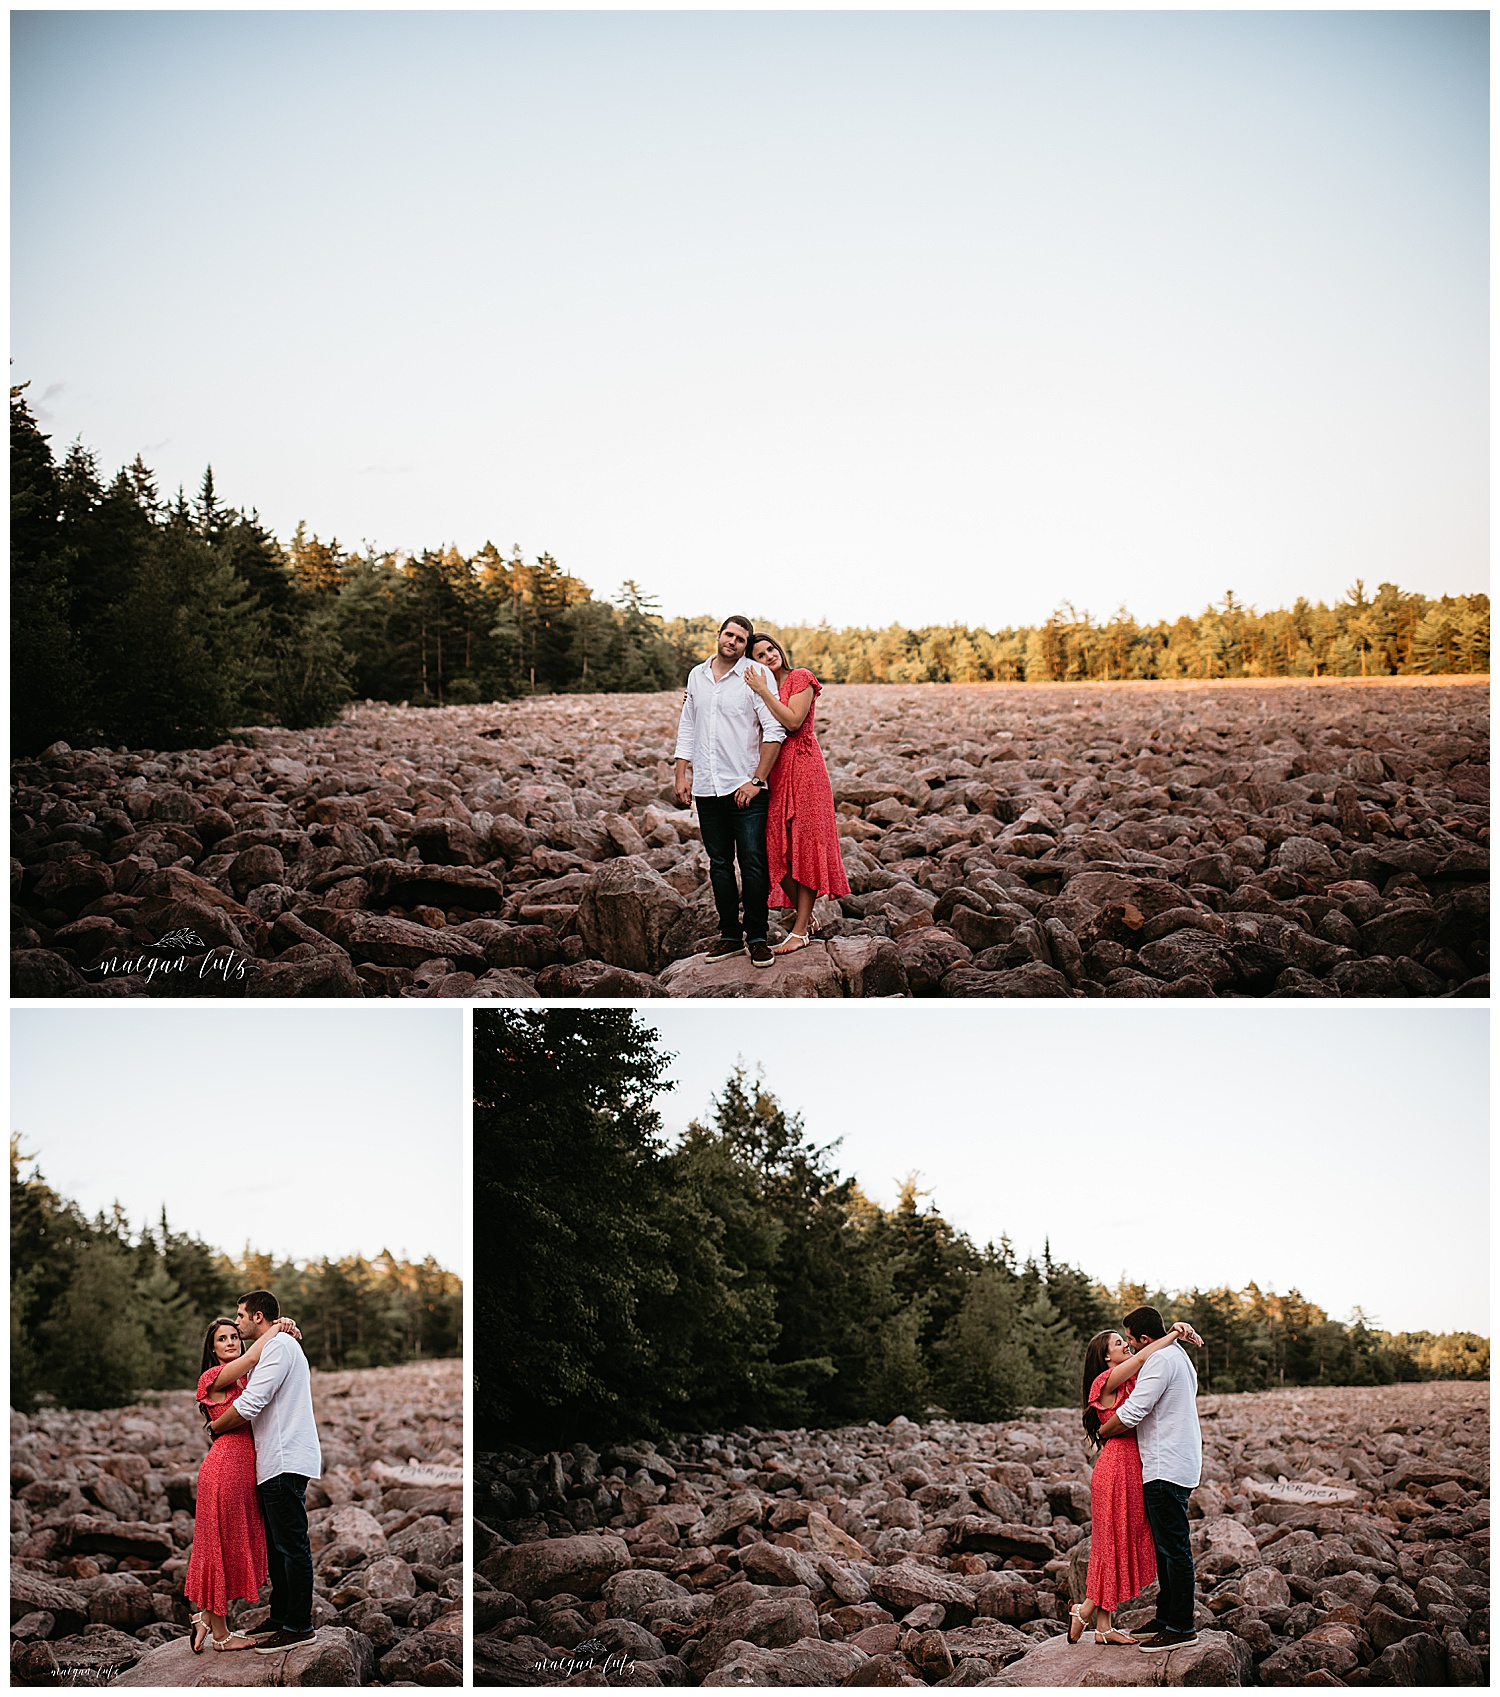 NEPA-Mount-Pocono-Lehigh-Valley-Wedding-Engagement-photographer-at-Hickory-Run-State-Park-Whitehaven-PA_0020.jpg